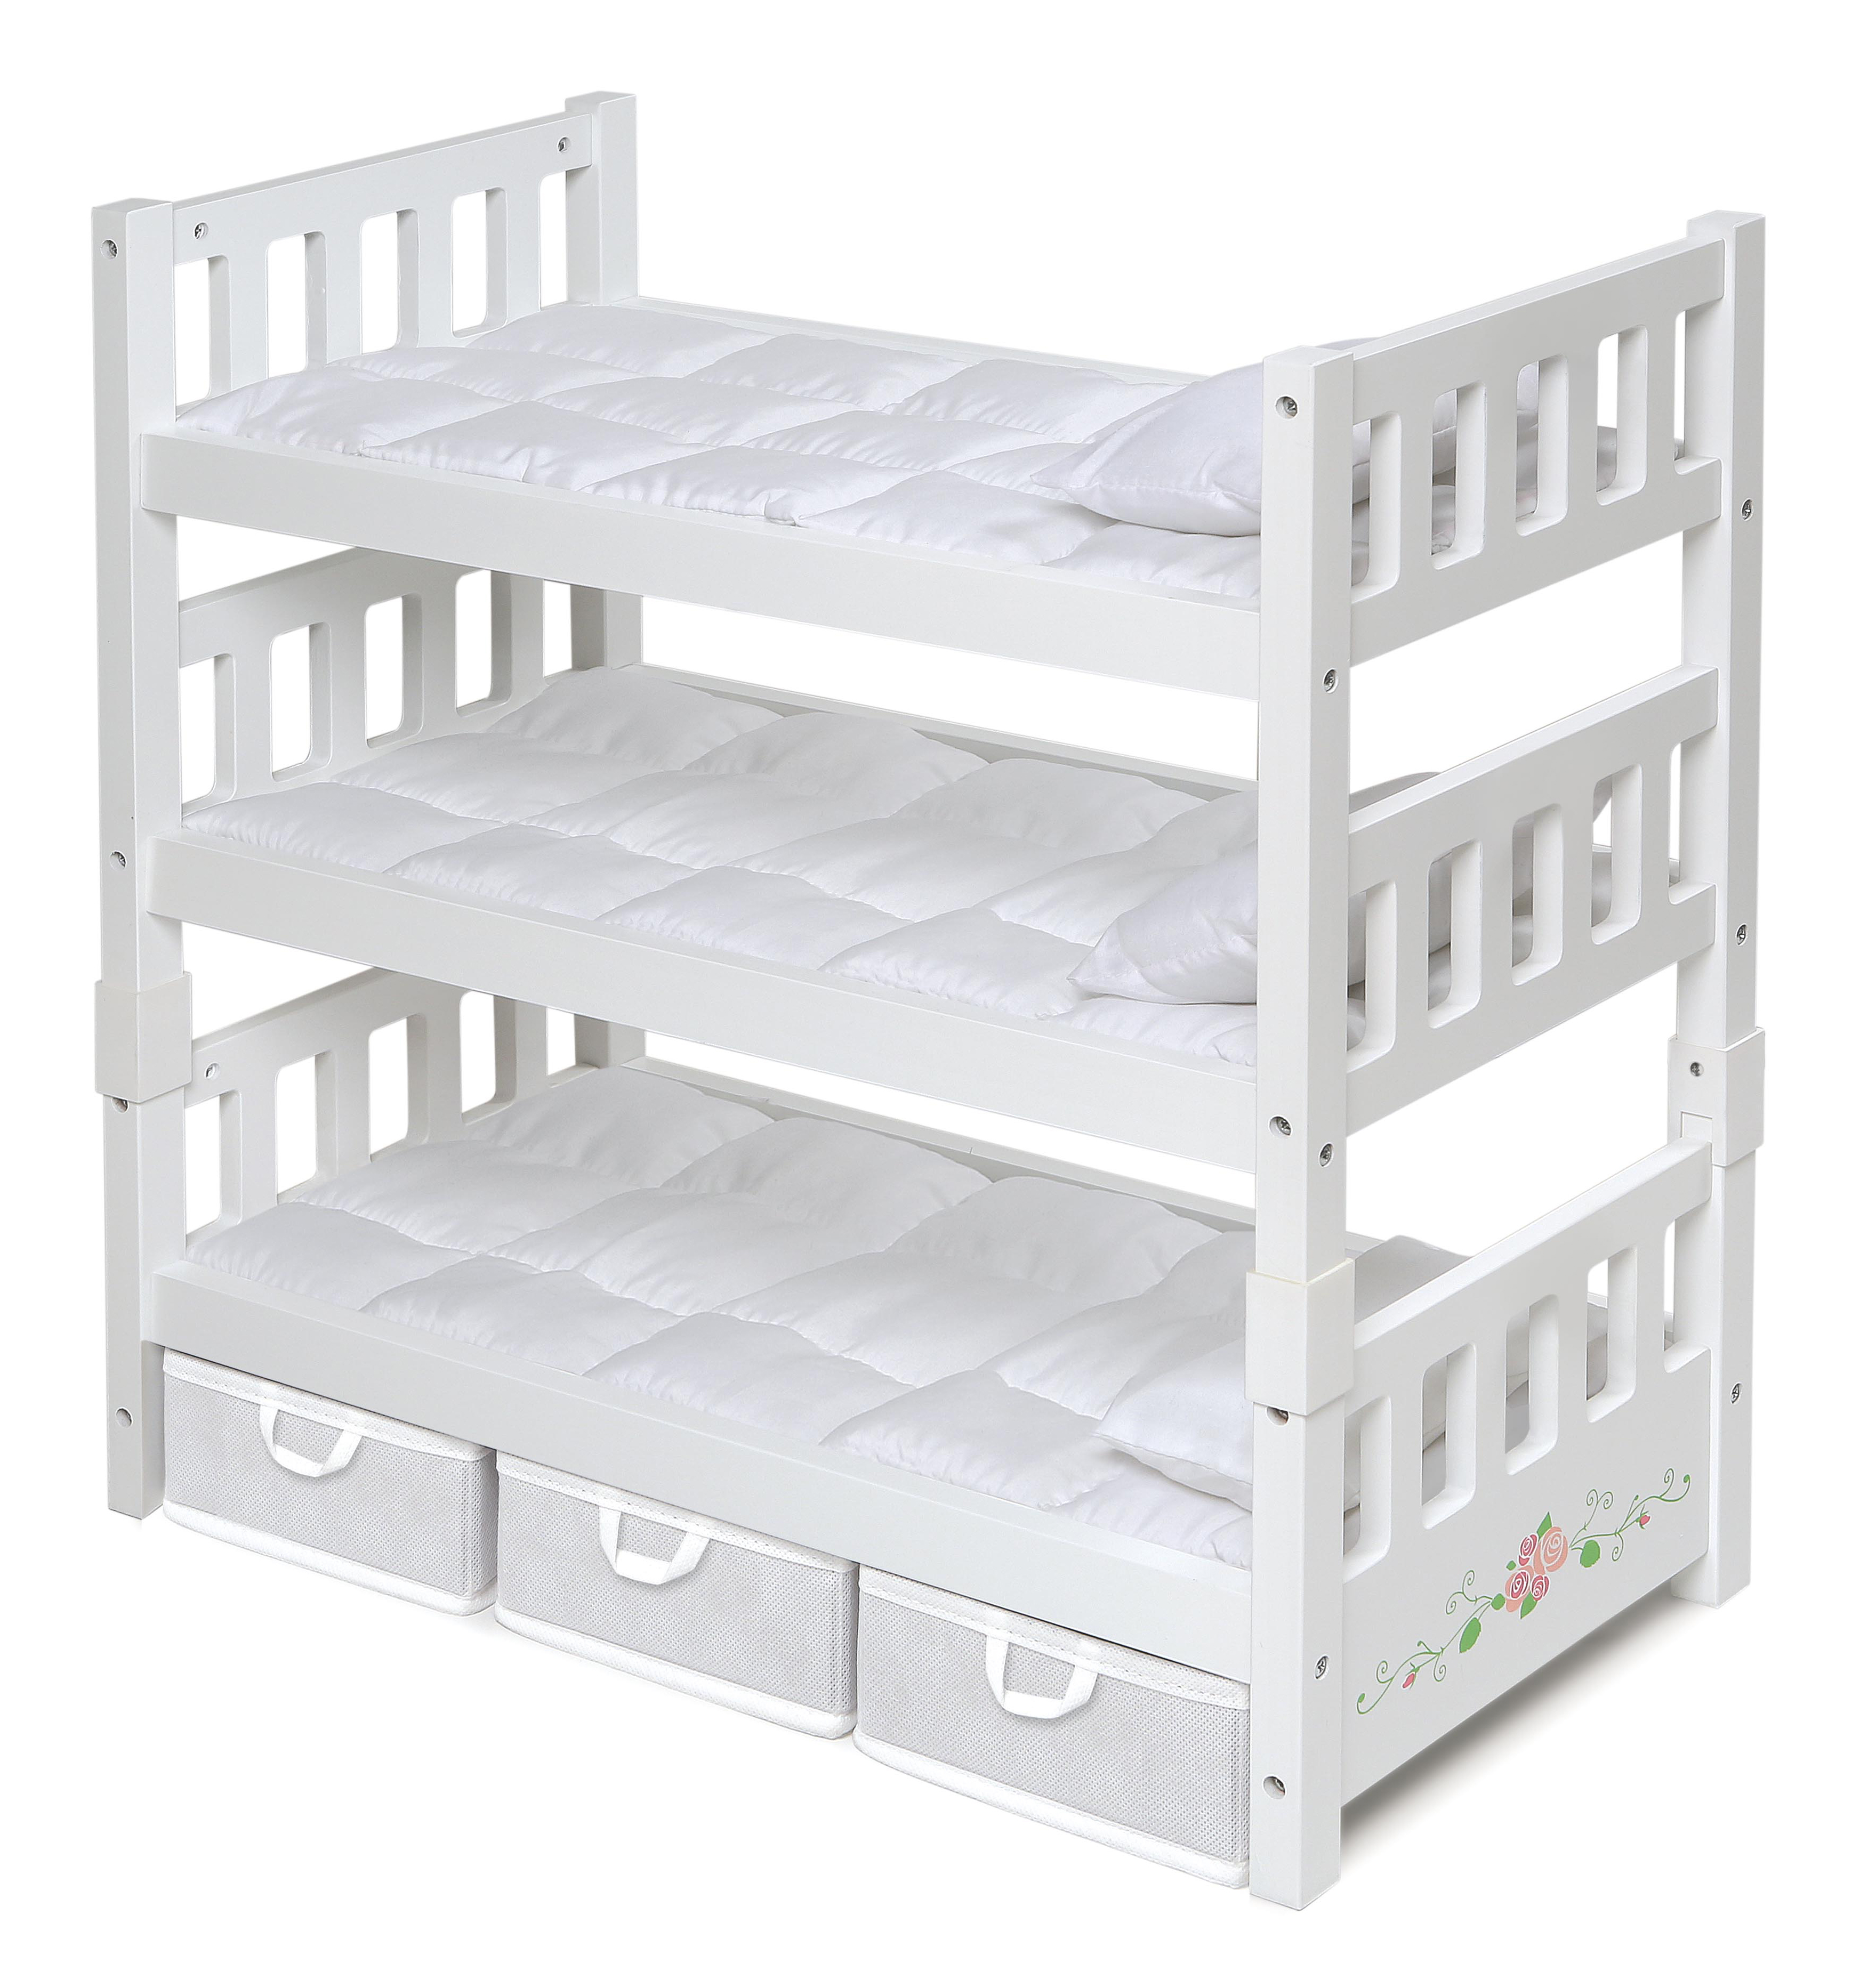 Badger Basket 1-2-3 Convertible Doll Bunk Bed with Bedding and Storage Baskets White Rose... by Badger Basket